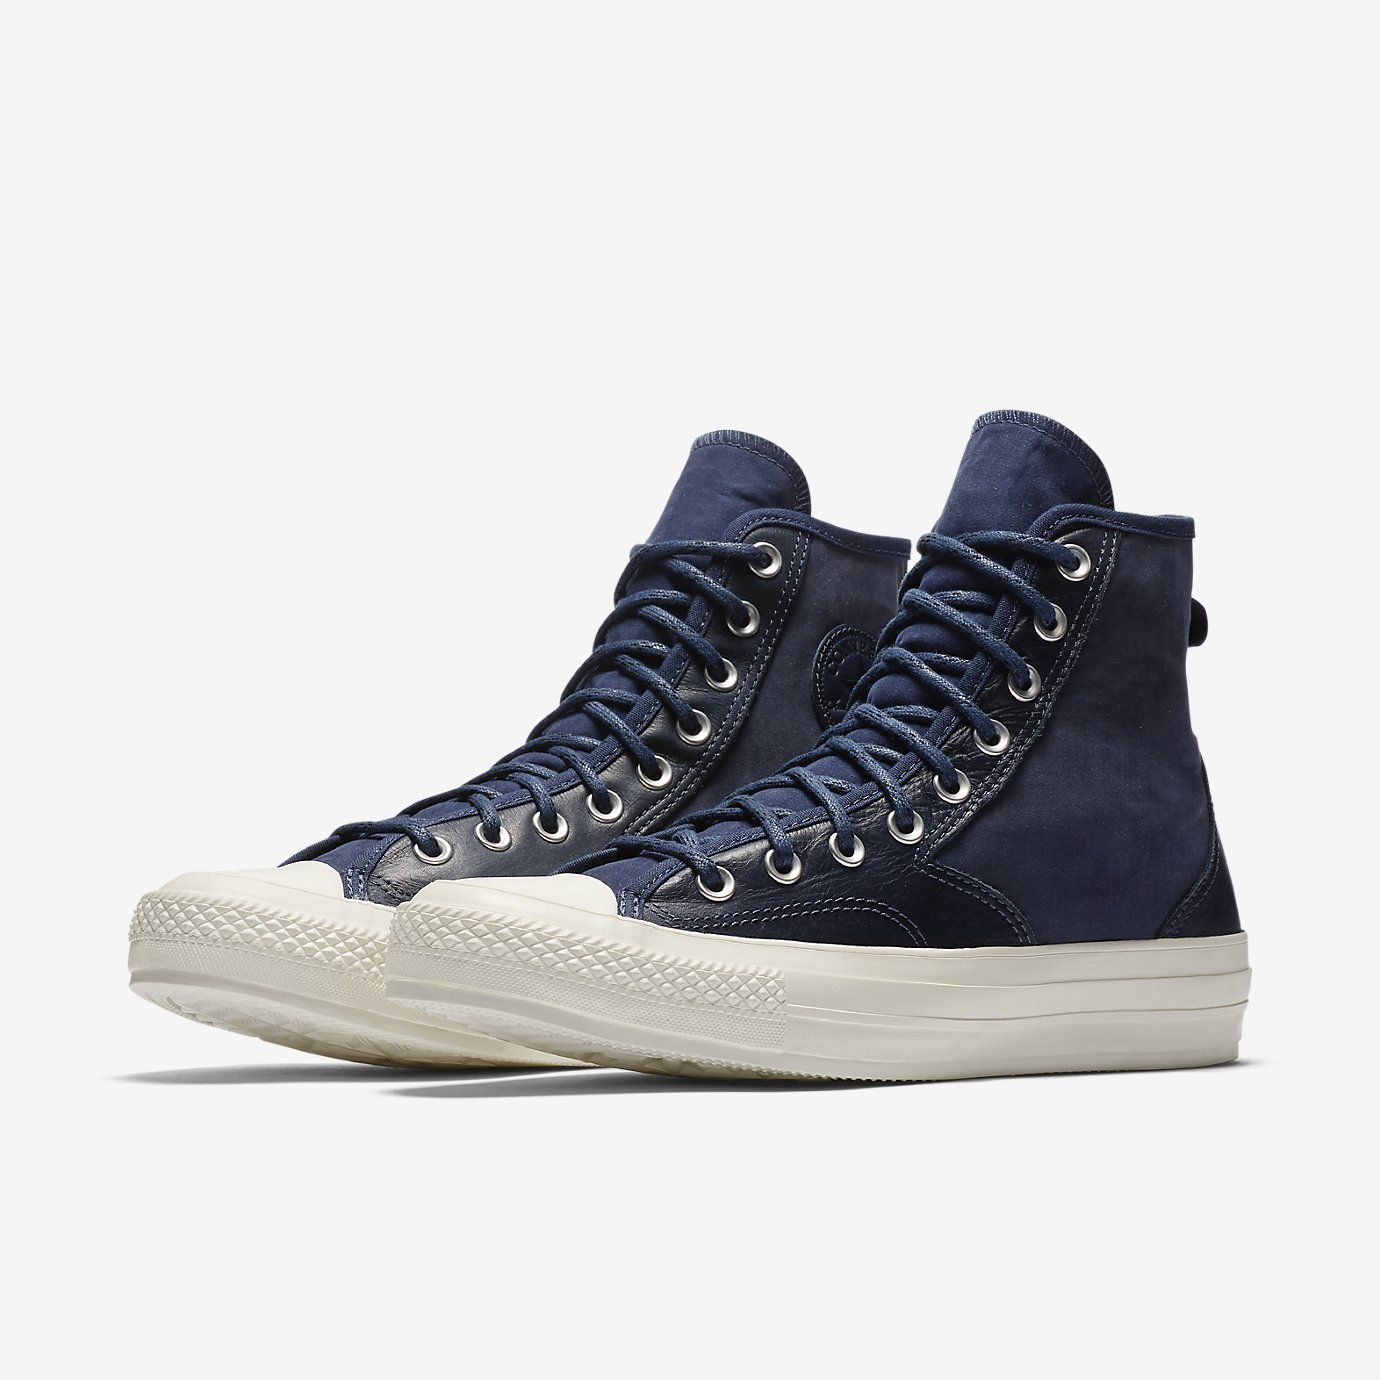 CONVERSE CUSTOM CHUCK 70 LONDON EDITION HIGH TOP  d23a7e80416